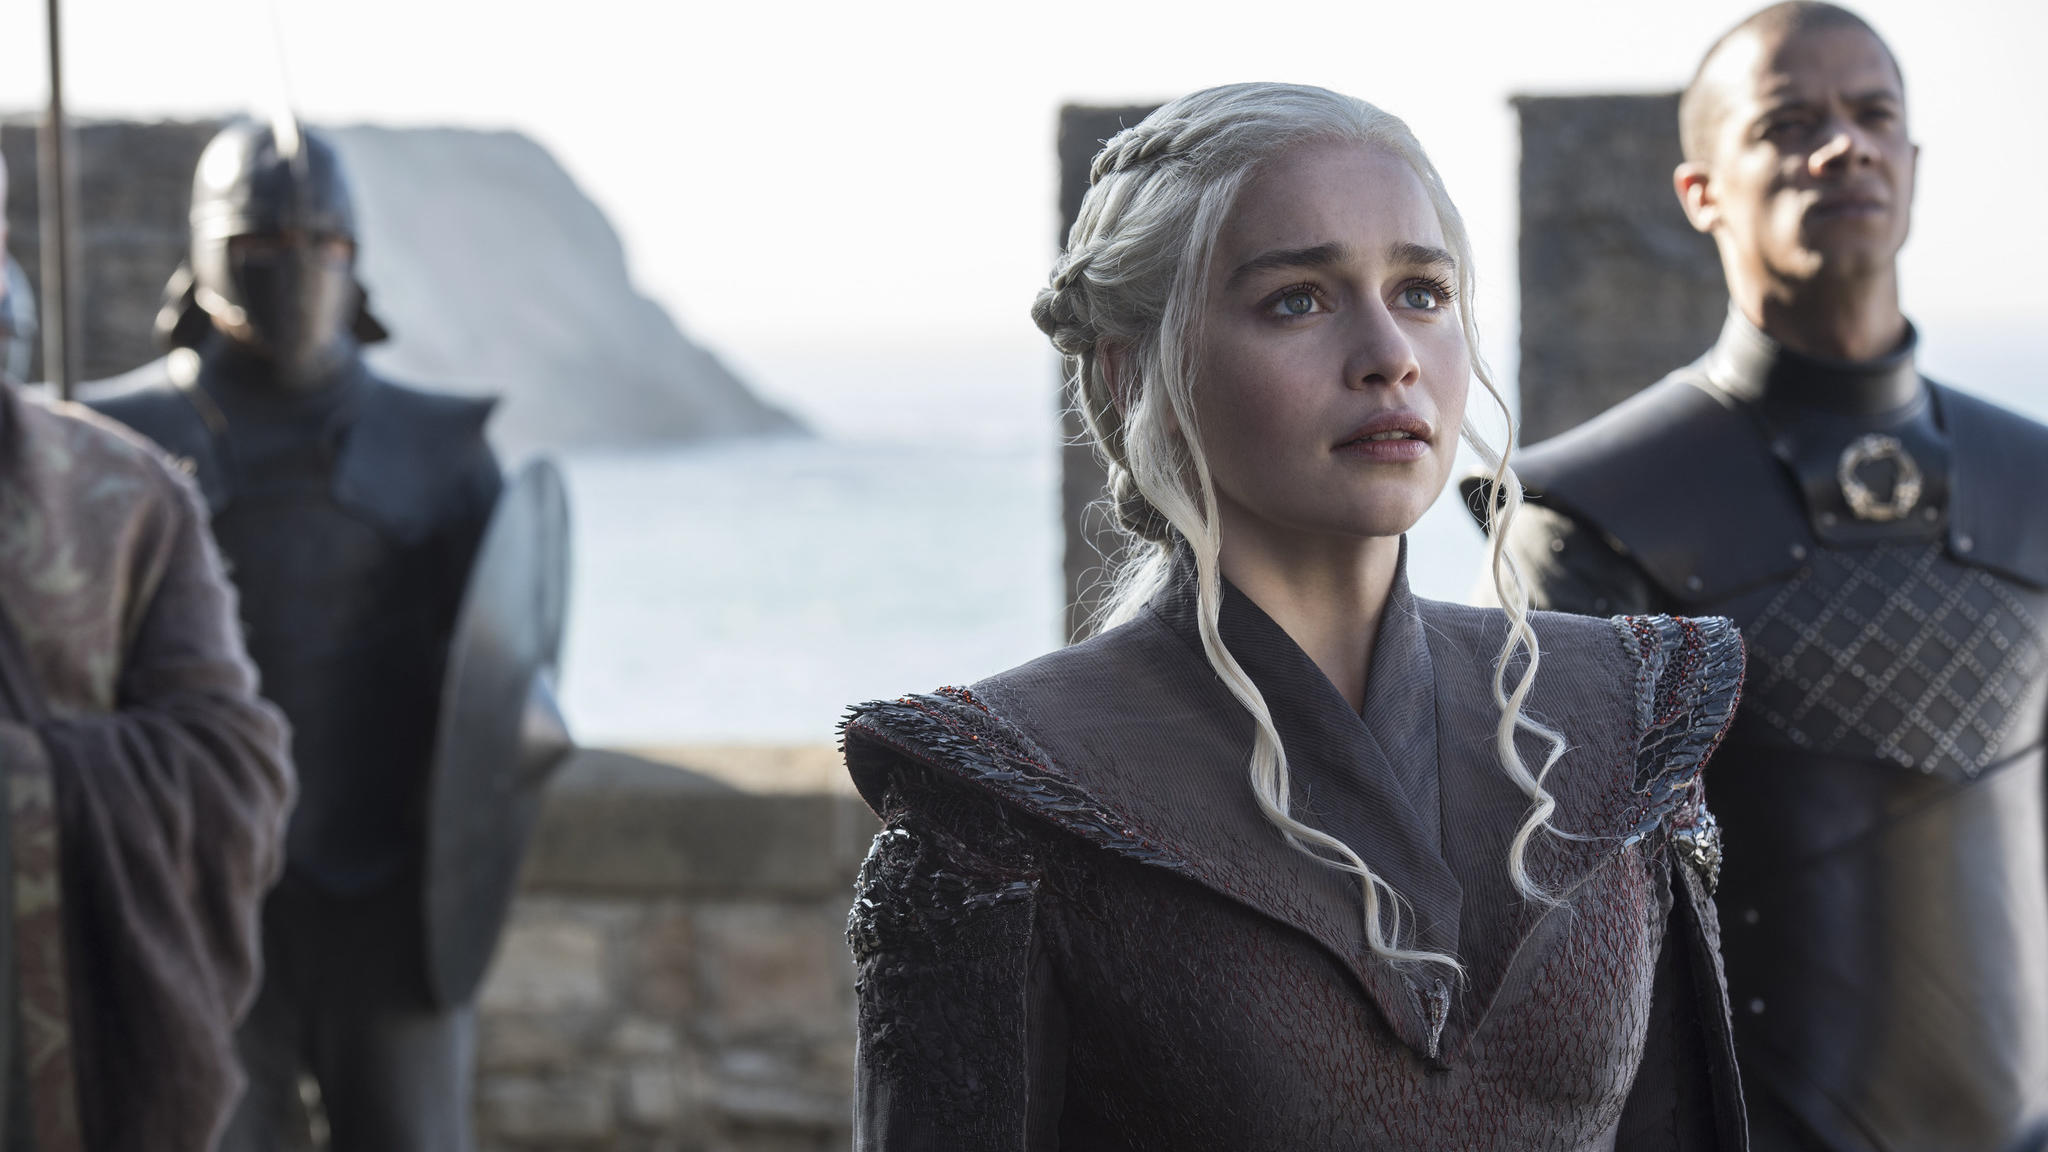 Check out three new character stills from game of thrones for Daenerys jewelry season 7